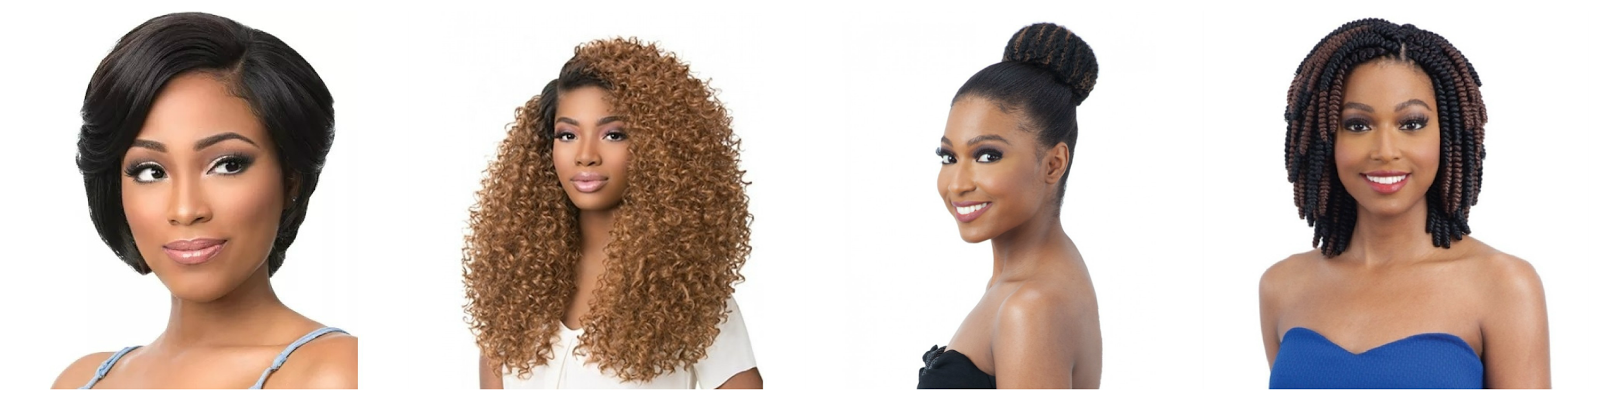 black models wearing different wigs